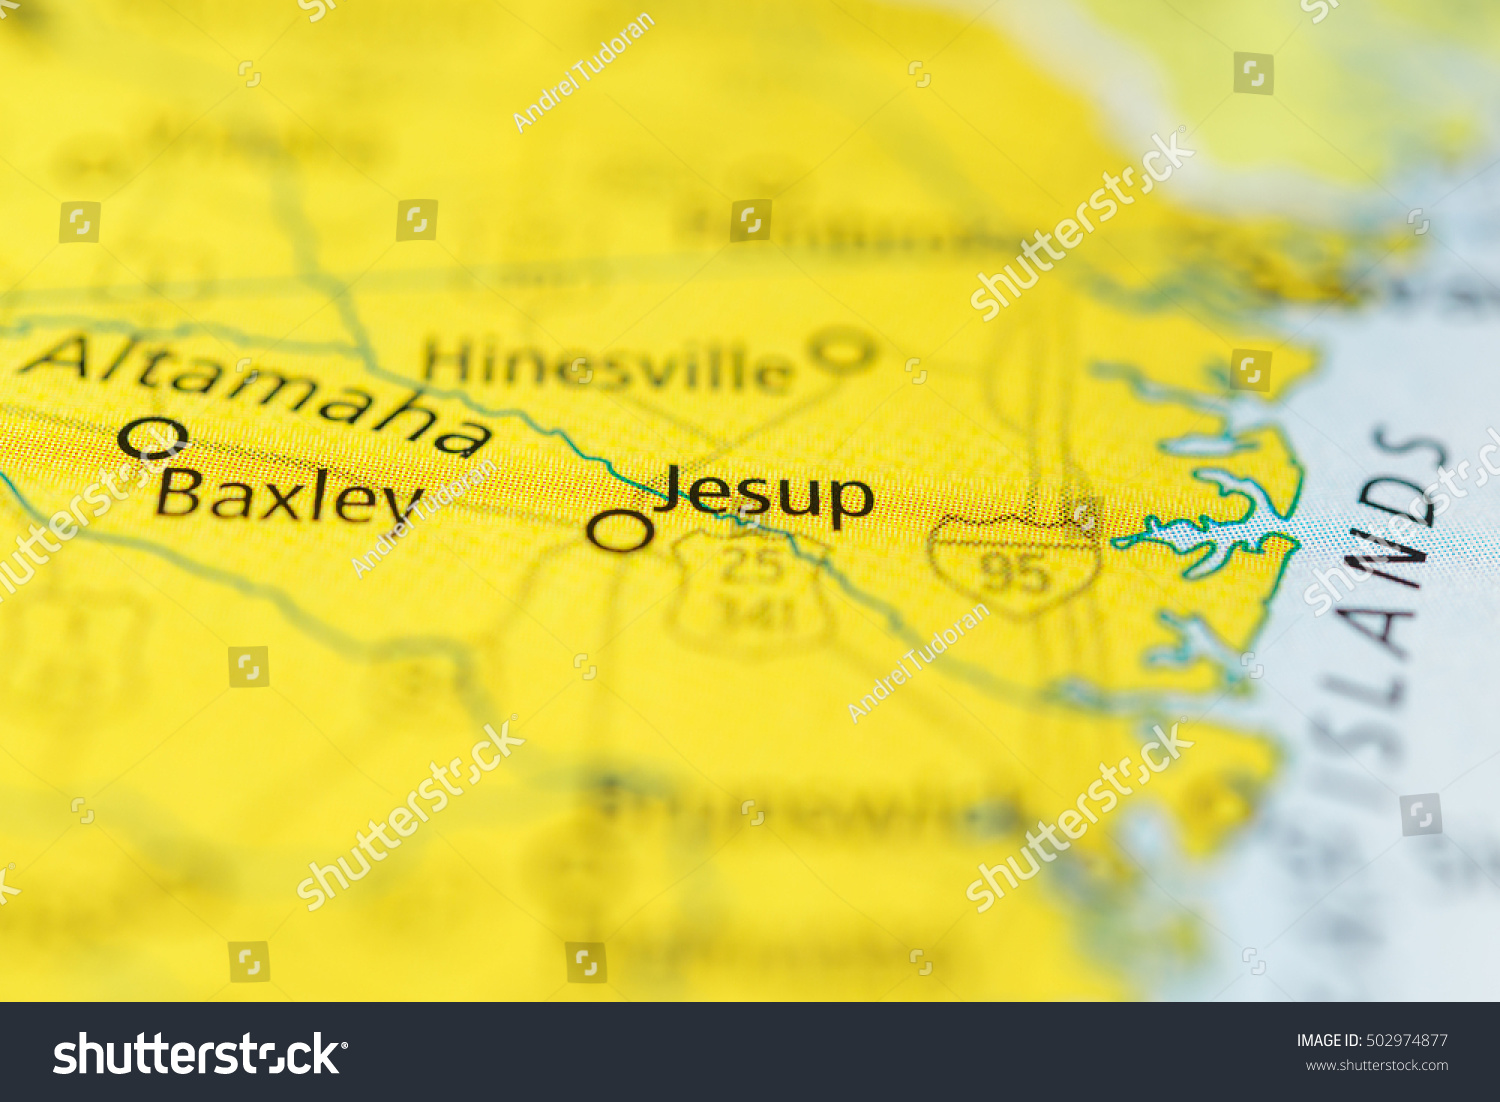 Map Of Jesup Georgia.Jesup Georgia Usa Stock Photo Edit Now 502974877 Shutterstock